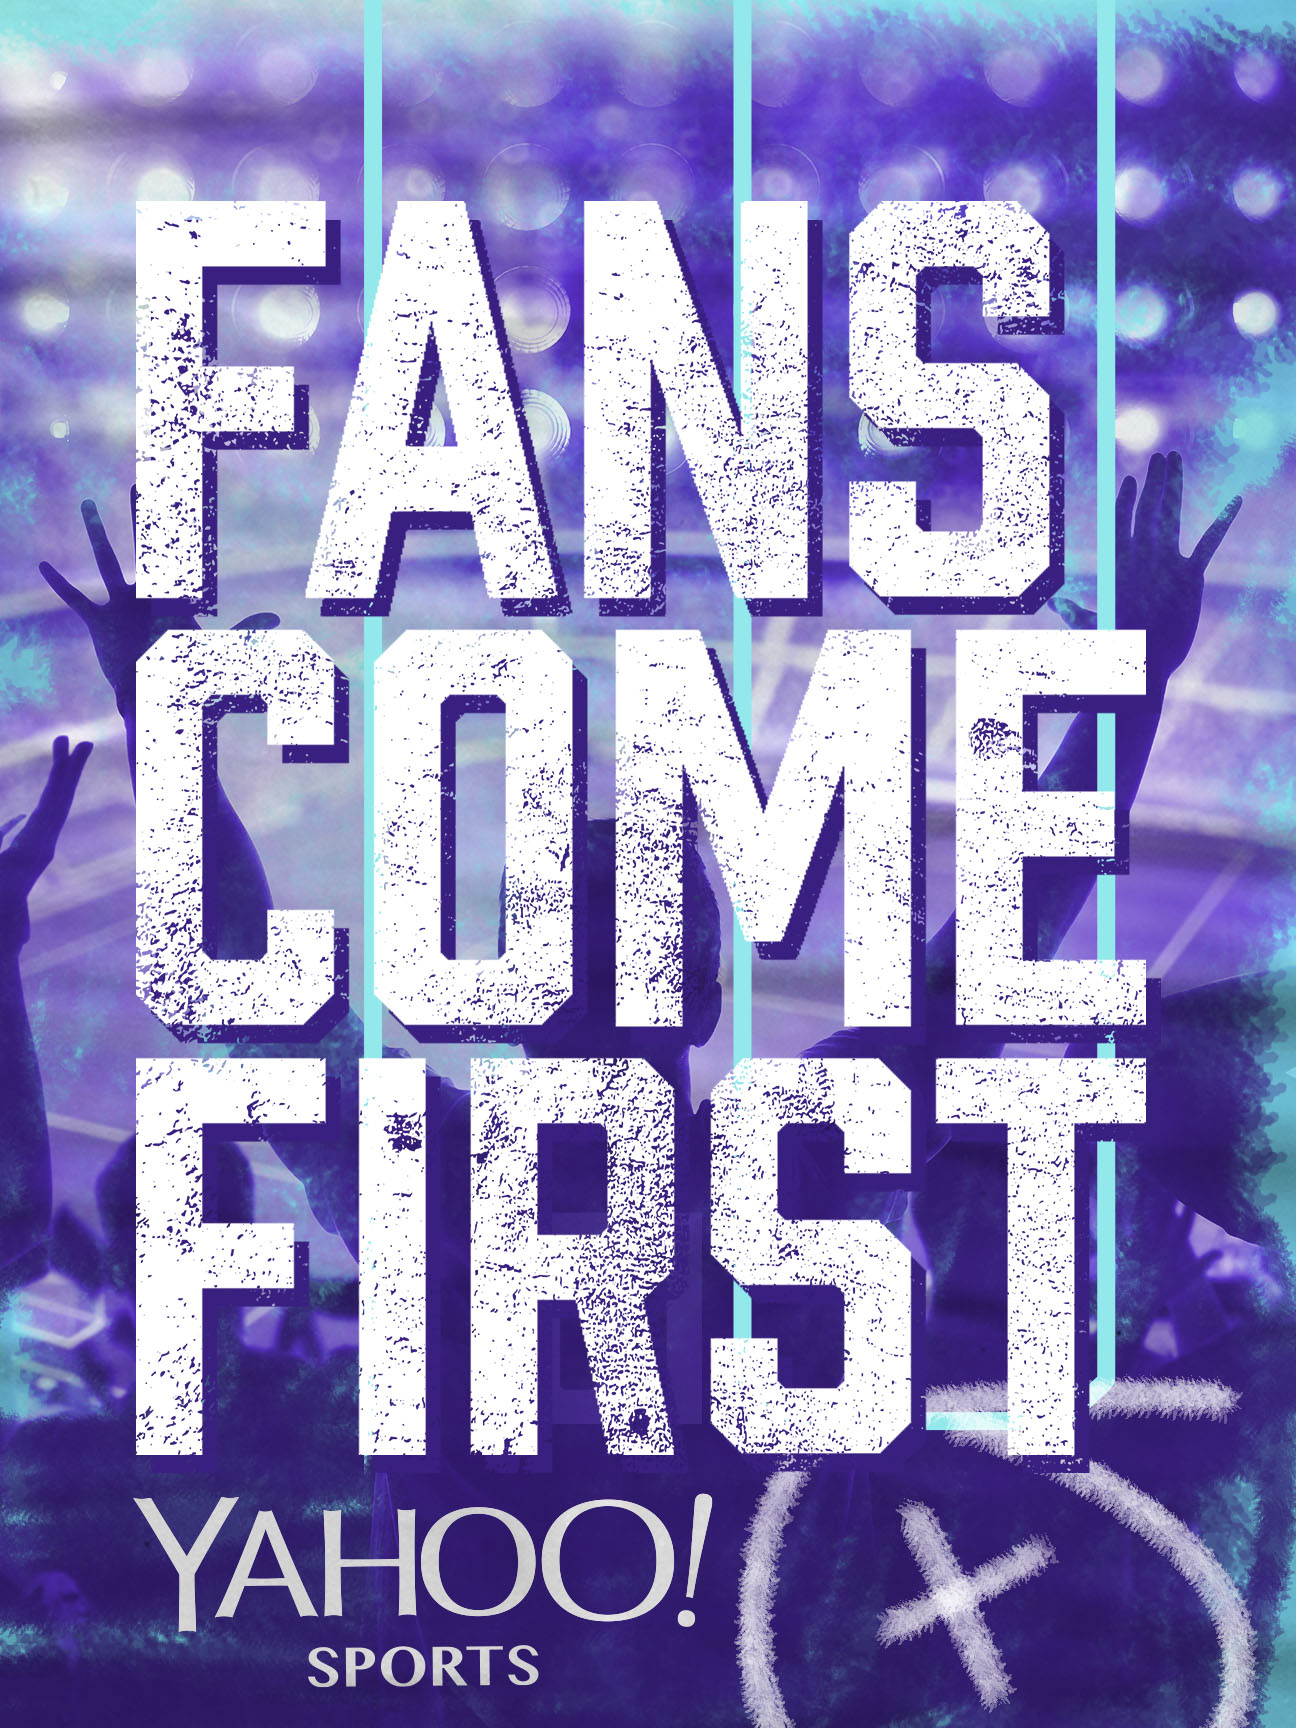 Yahoo Sports: Fans come first